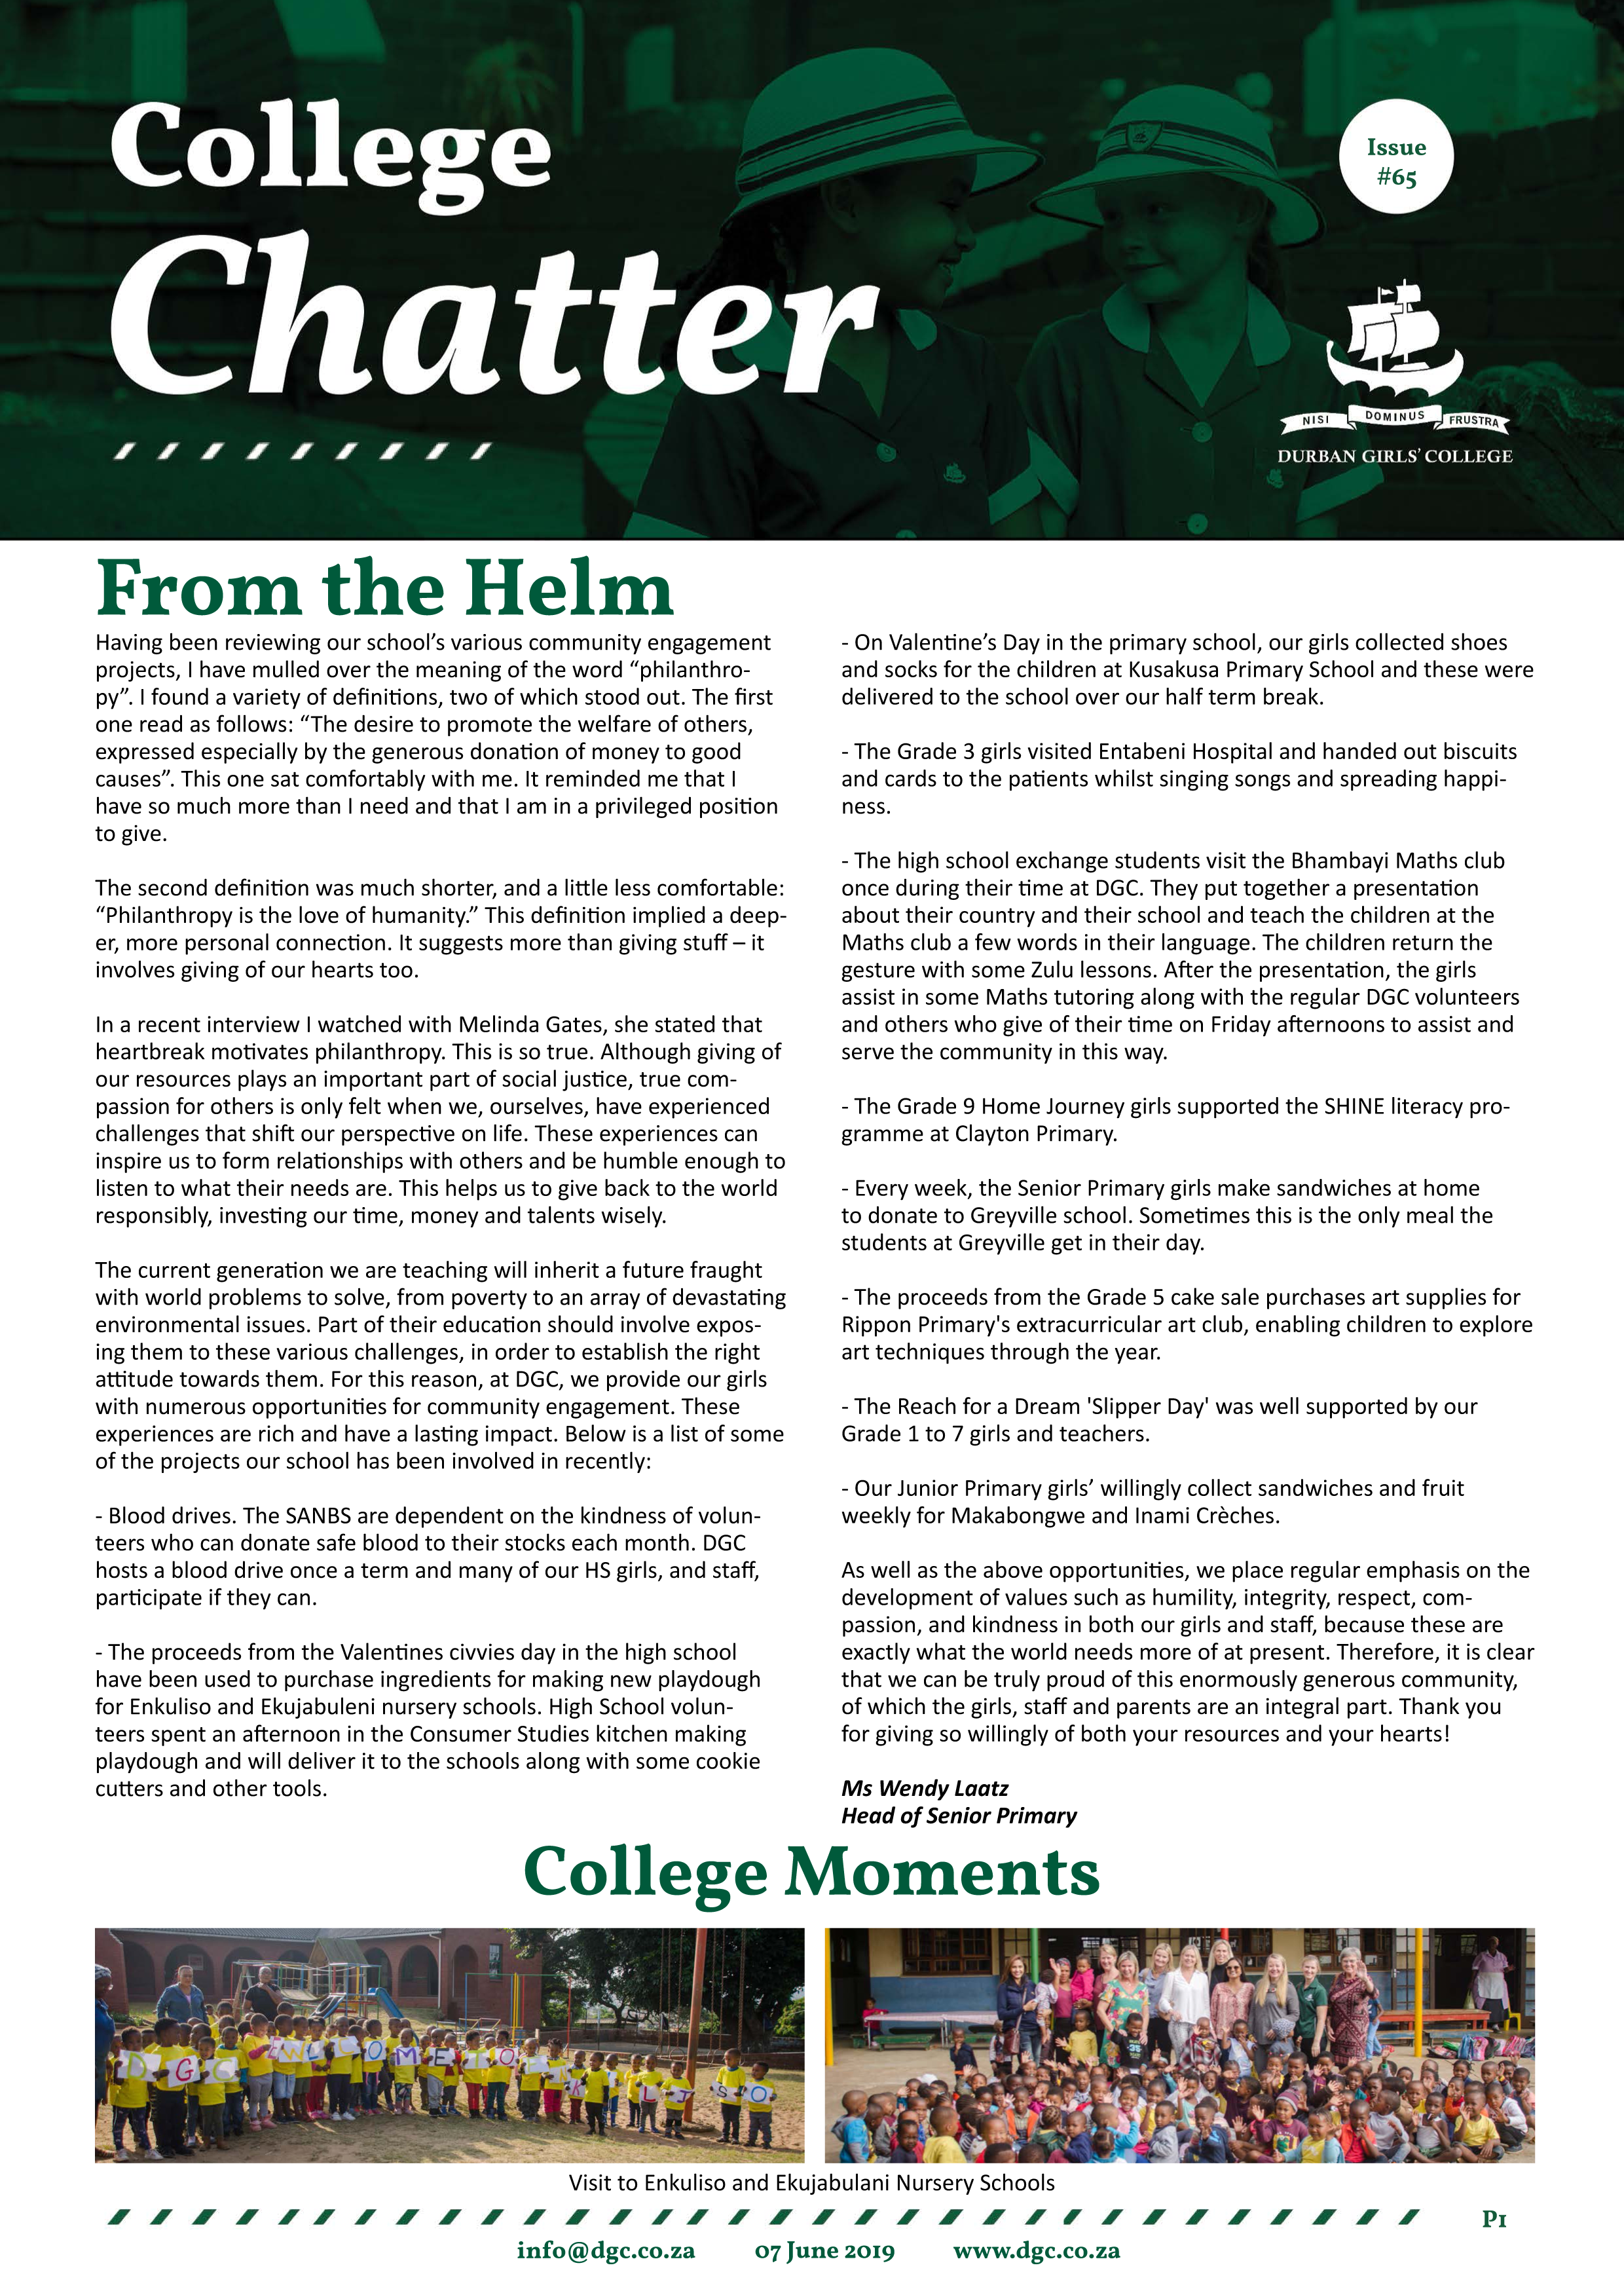 College-Chatter-Official-Issue-#65-1 - Durban Girls College